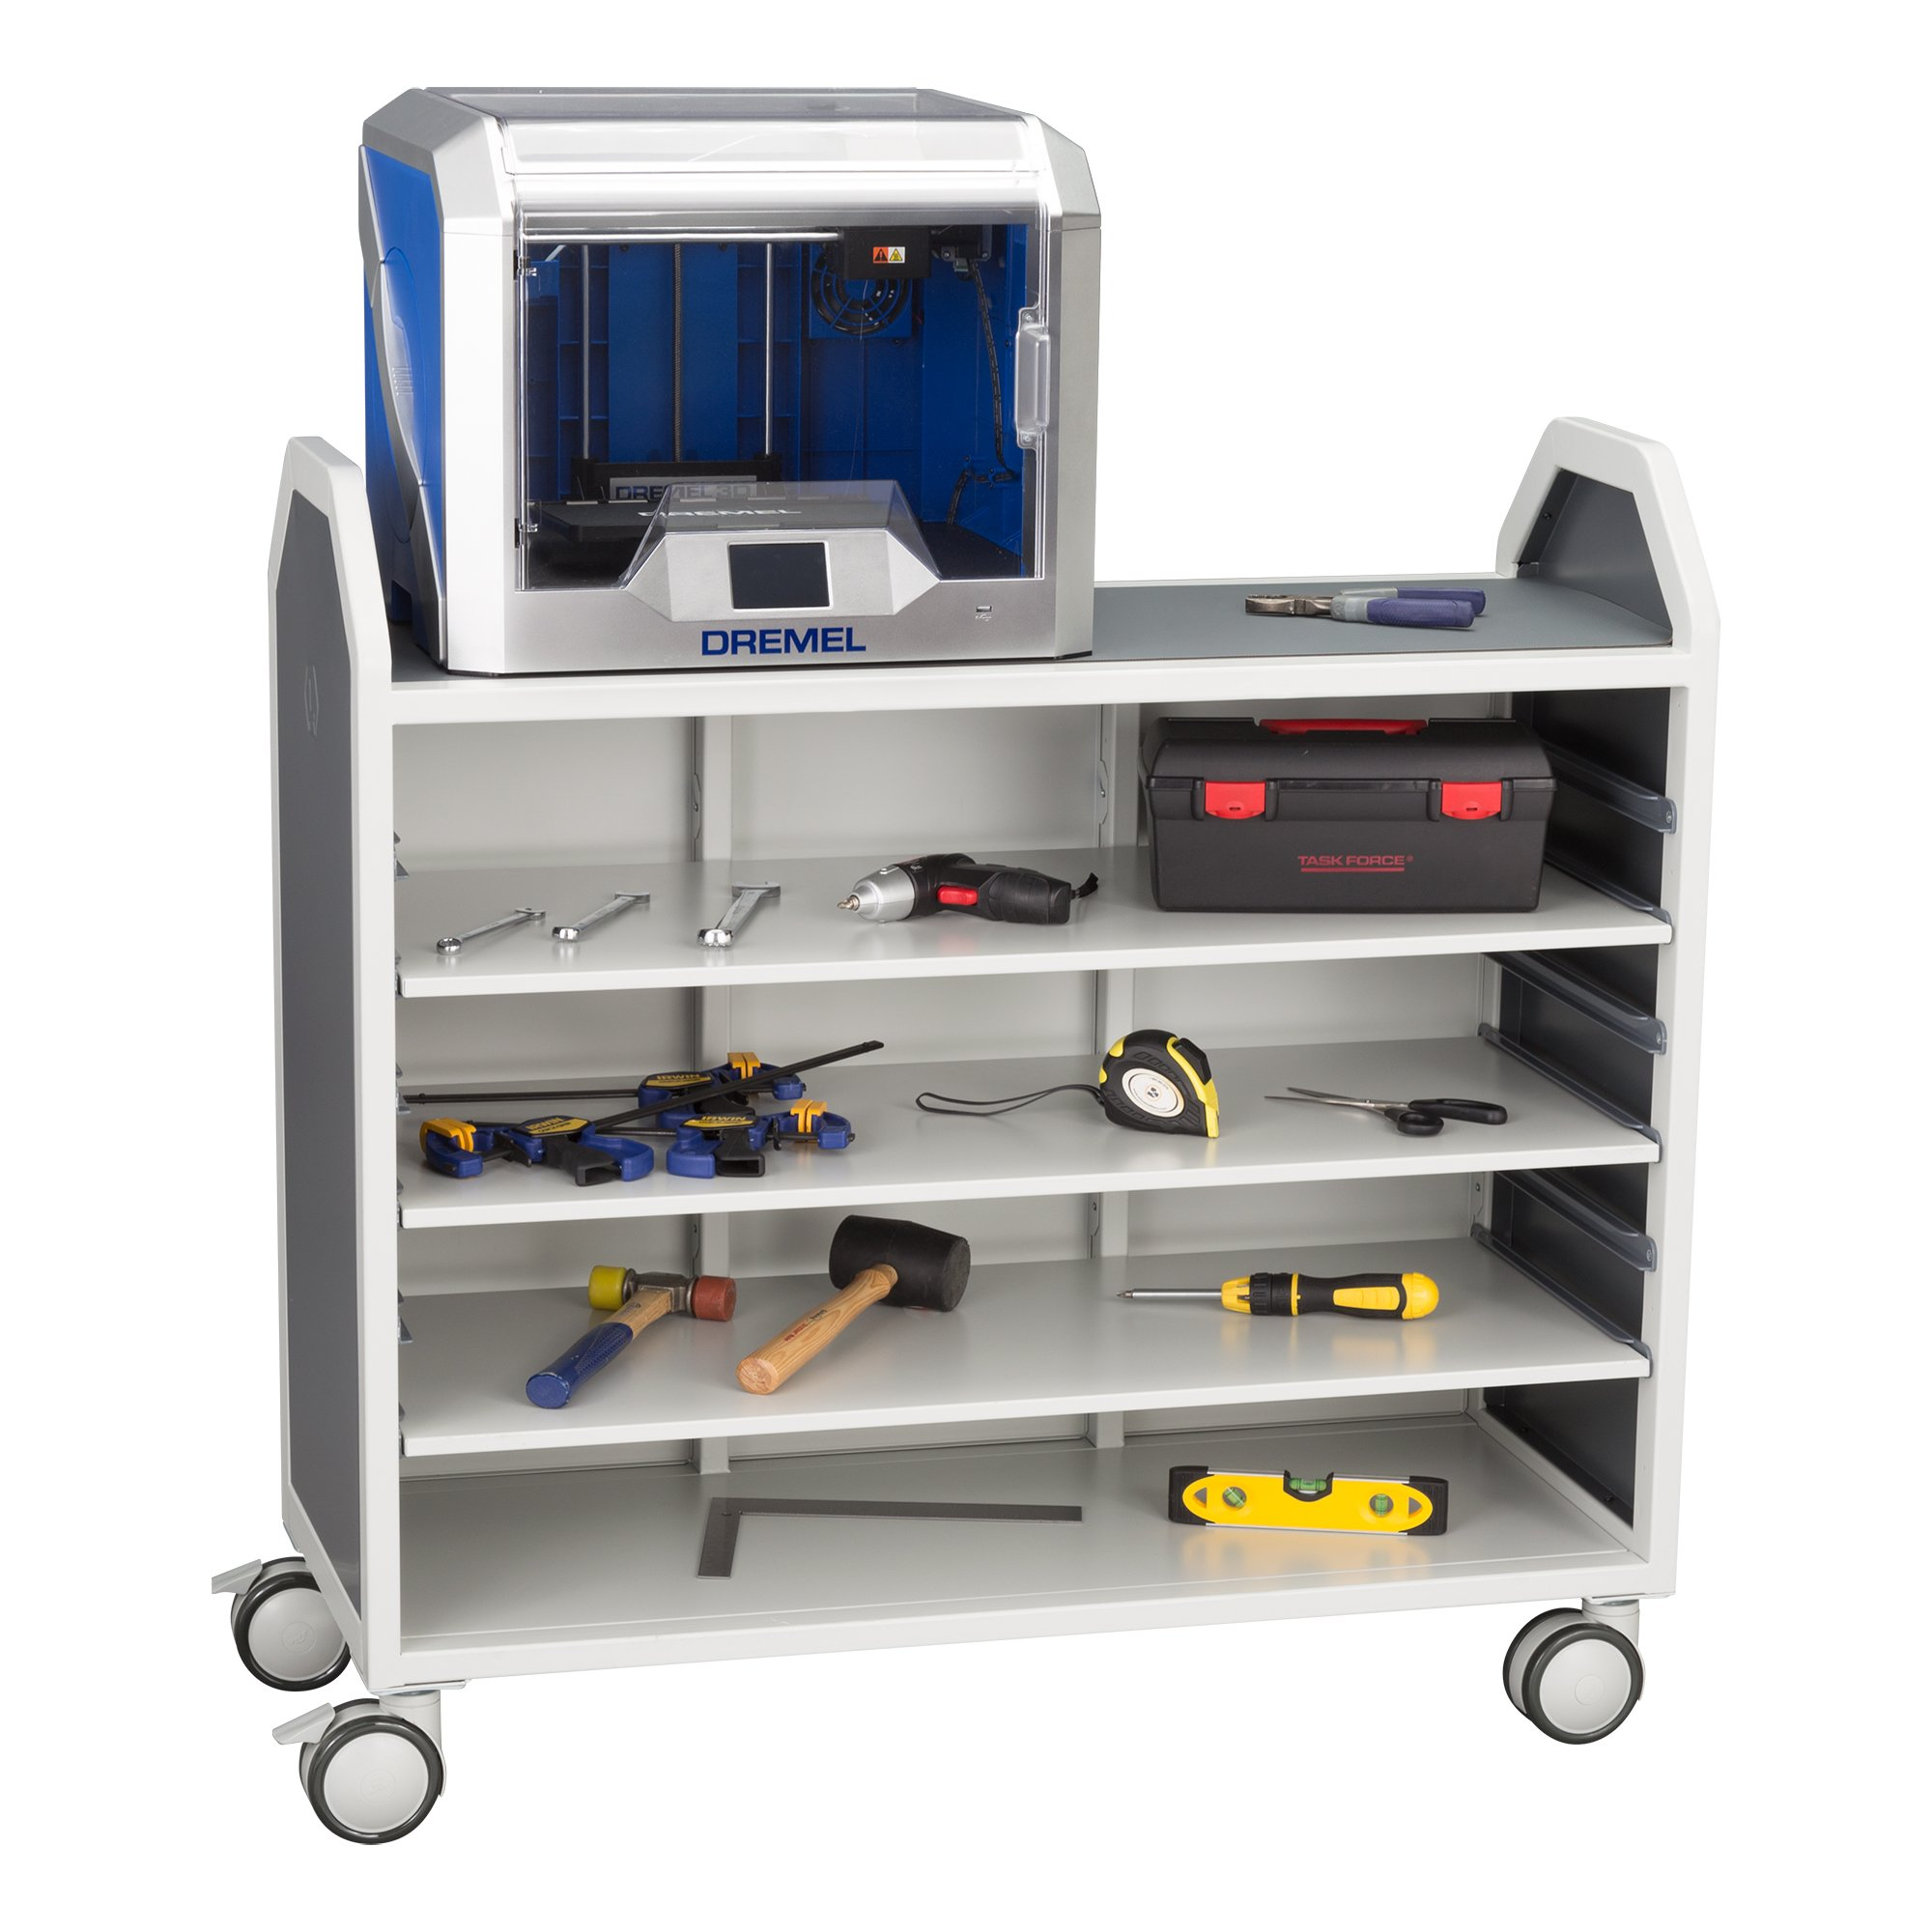 Learniture Profile Series Mobile Storage Cart with Adjustable Shelves, LNT-GNO3045-SO